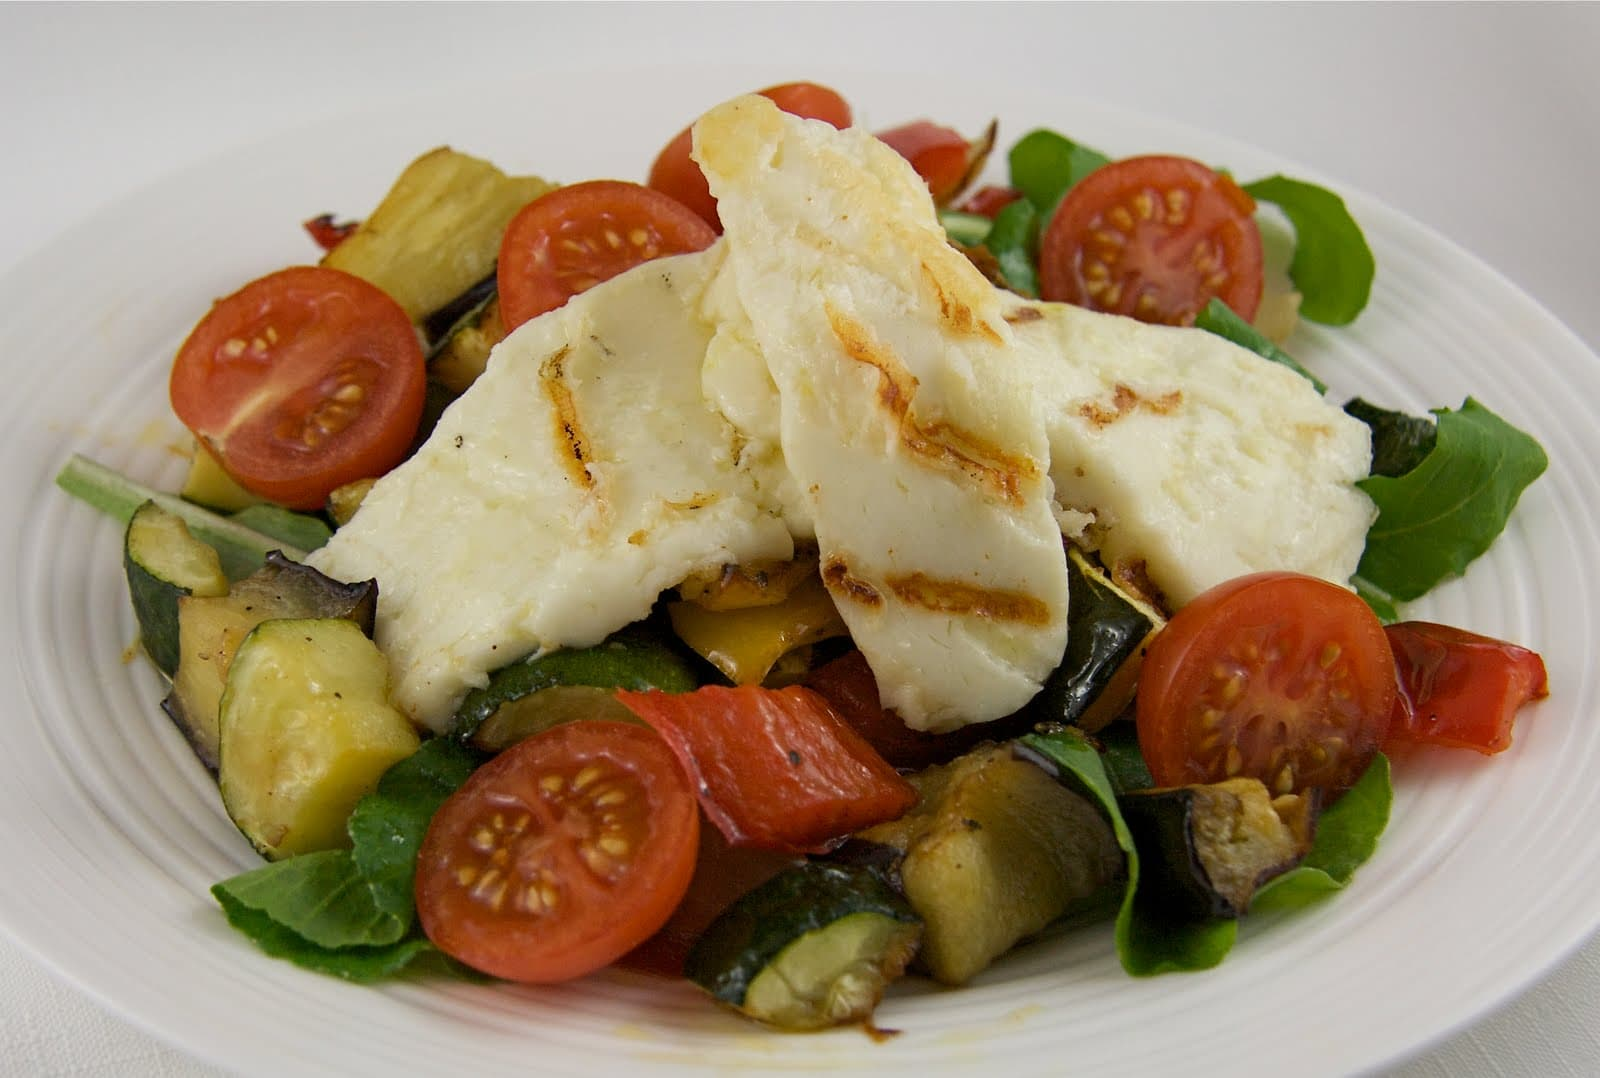 Halloumi, the squeaky cheese,